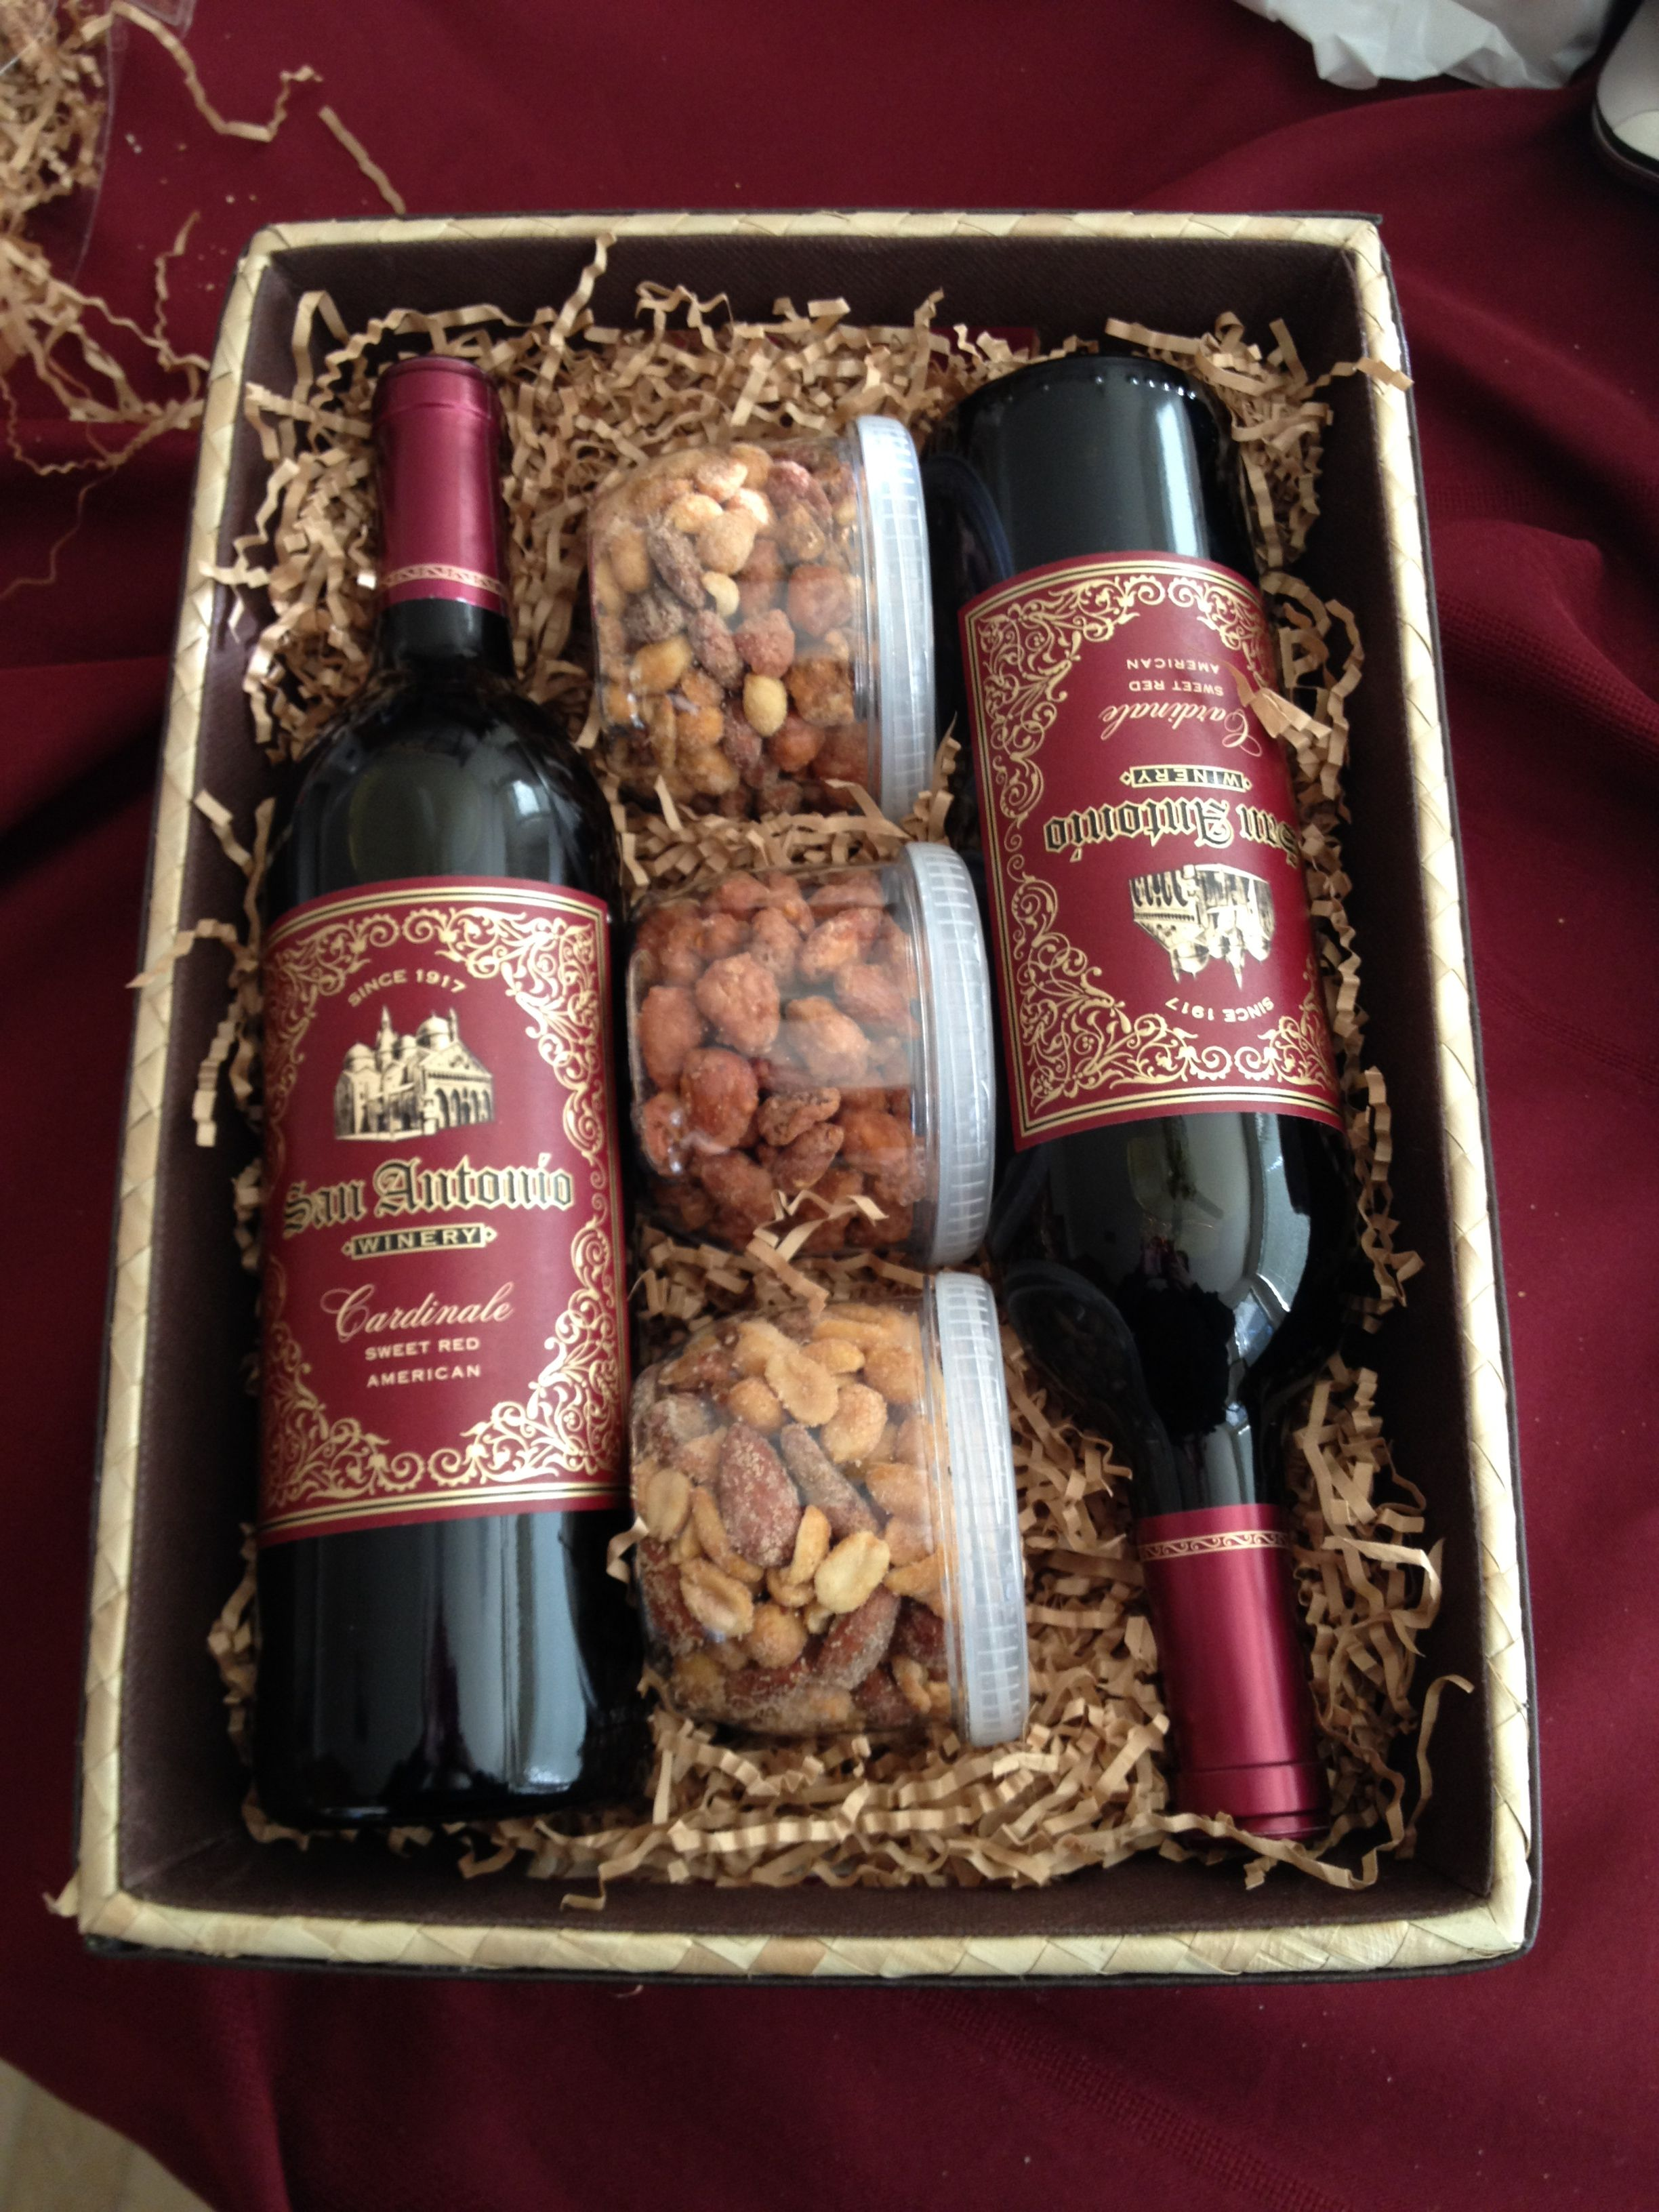 Wine Gift Basket. Nuts are a good idea to add to the wine